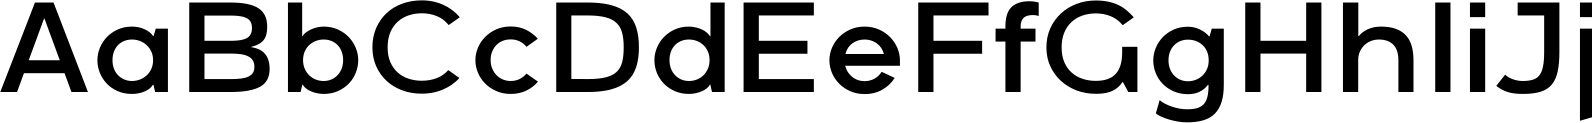 Arkibal Regular Font